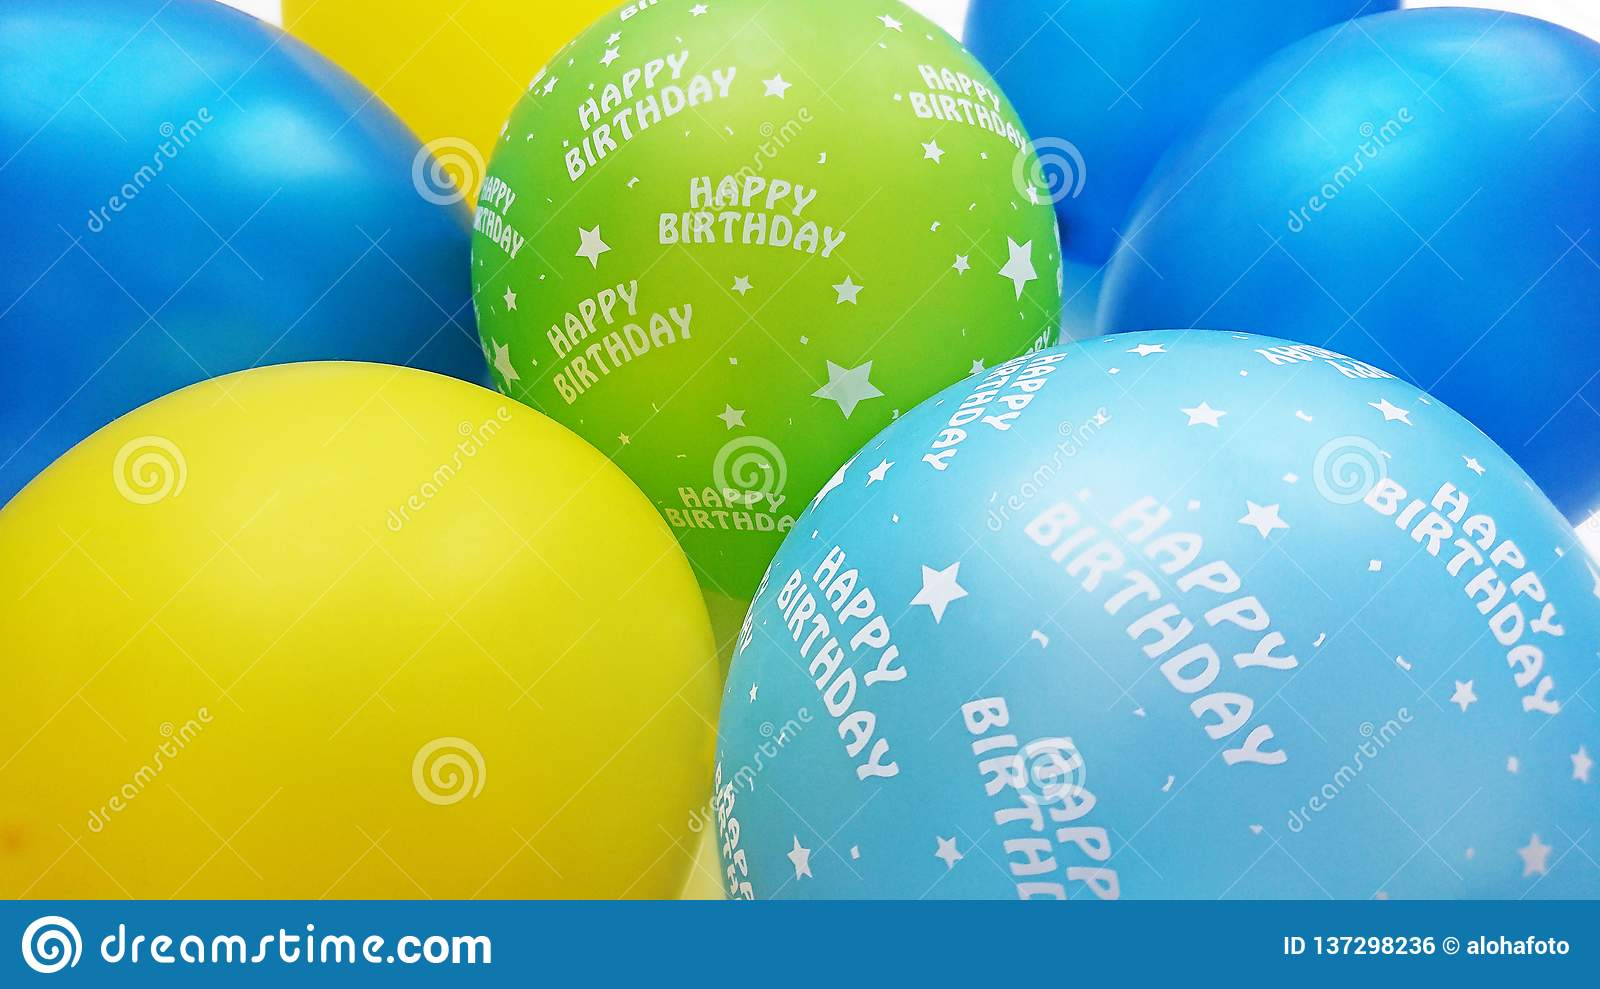 Colourful balloons in blue yellow apple green and turquoise with happy birthday text